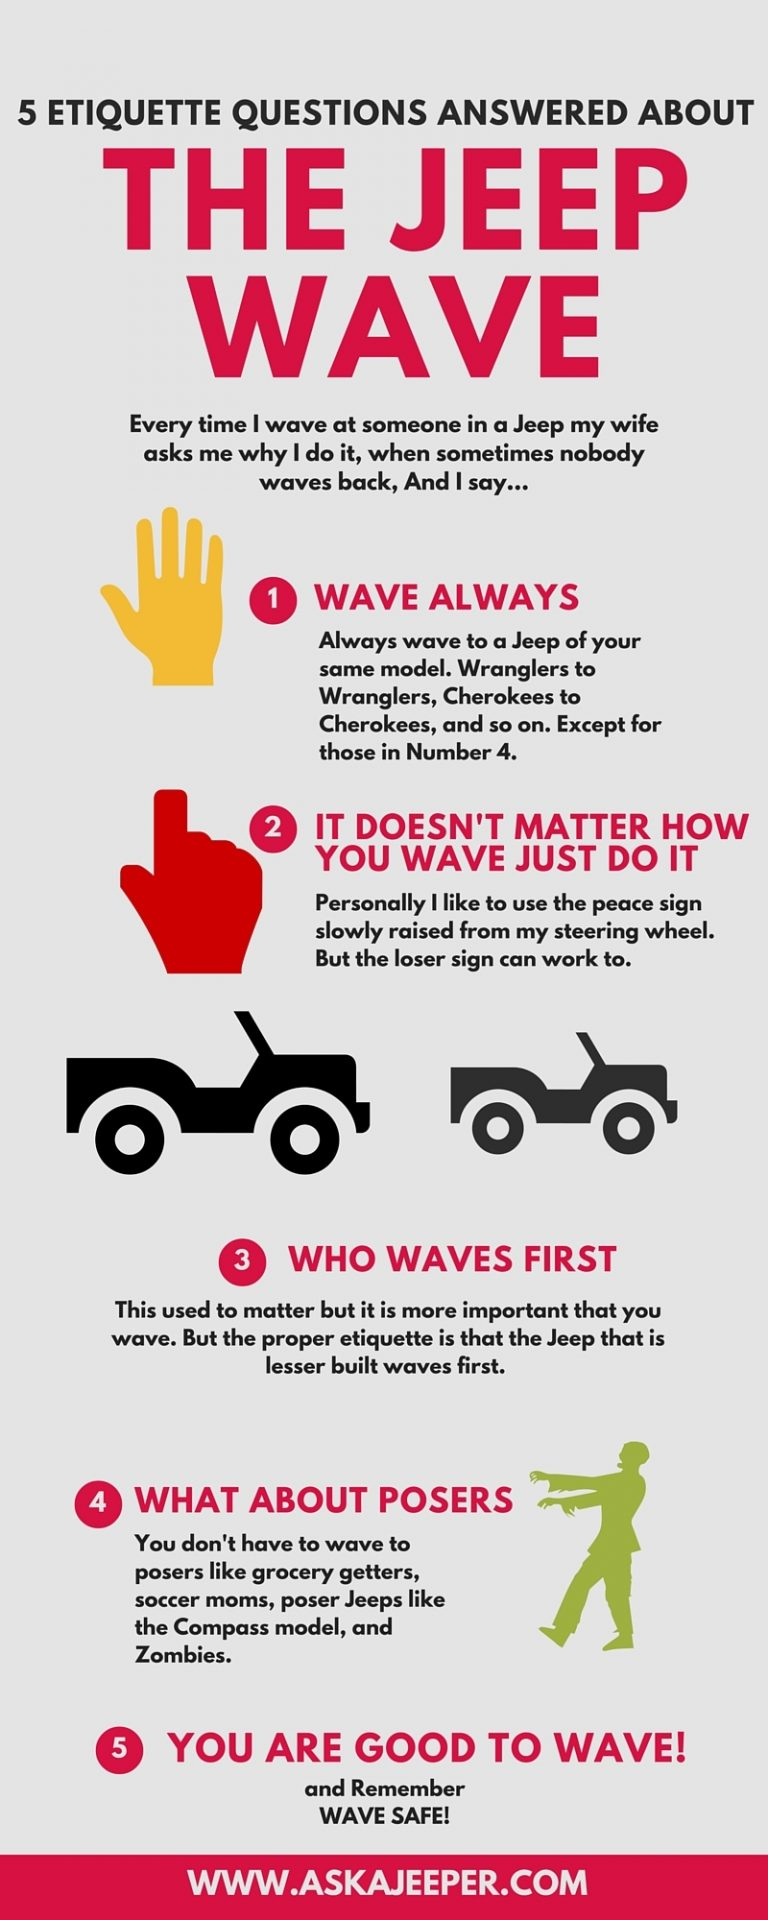 5 Etiquette Questions Answered About The Jeep Wave